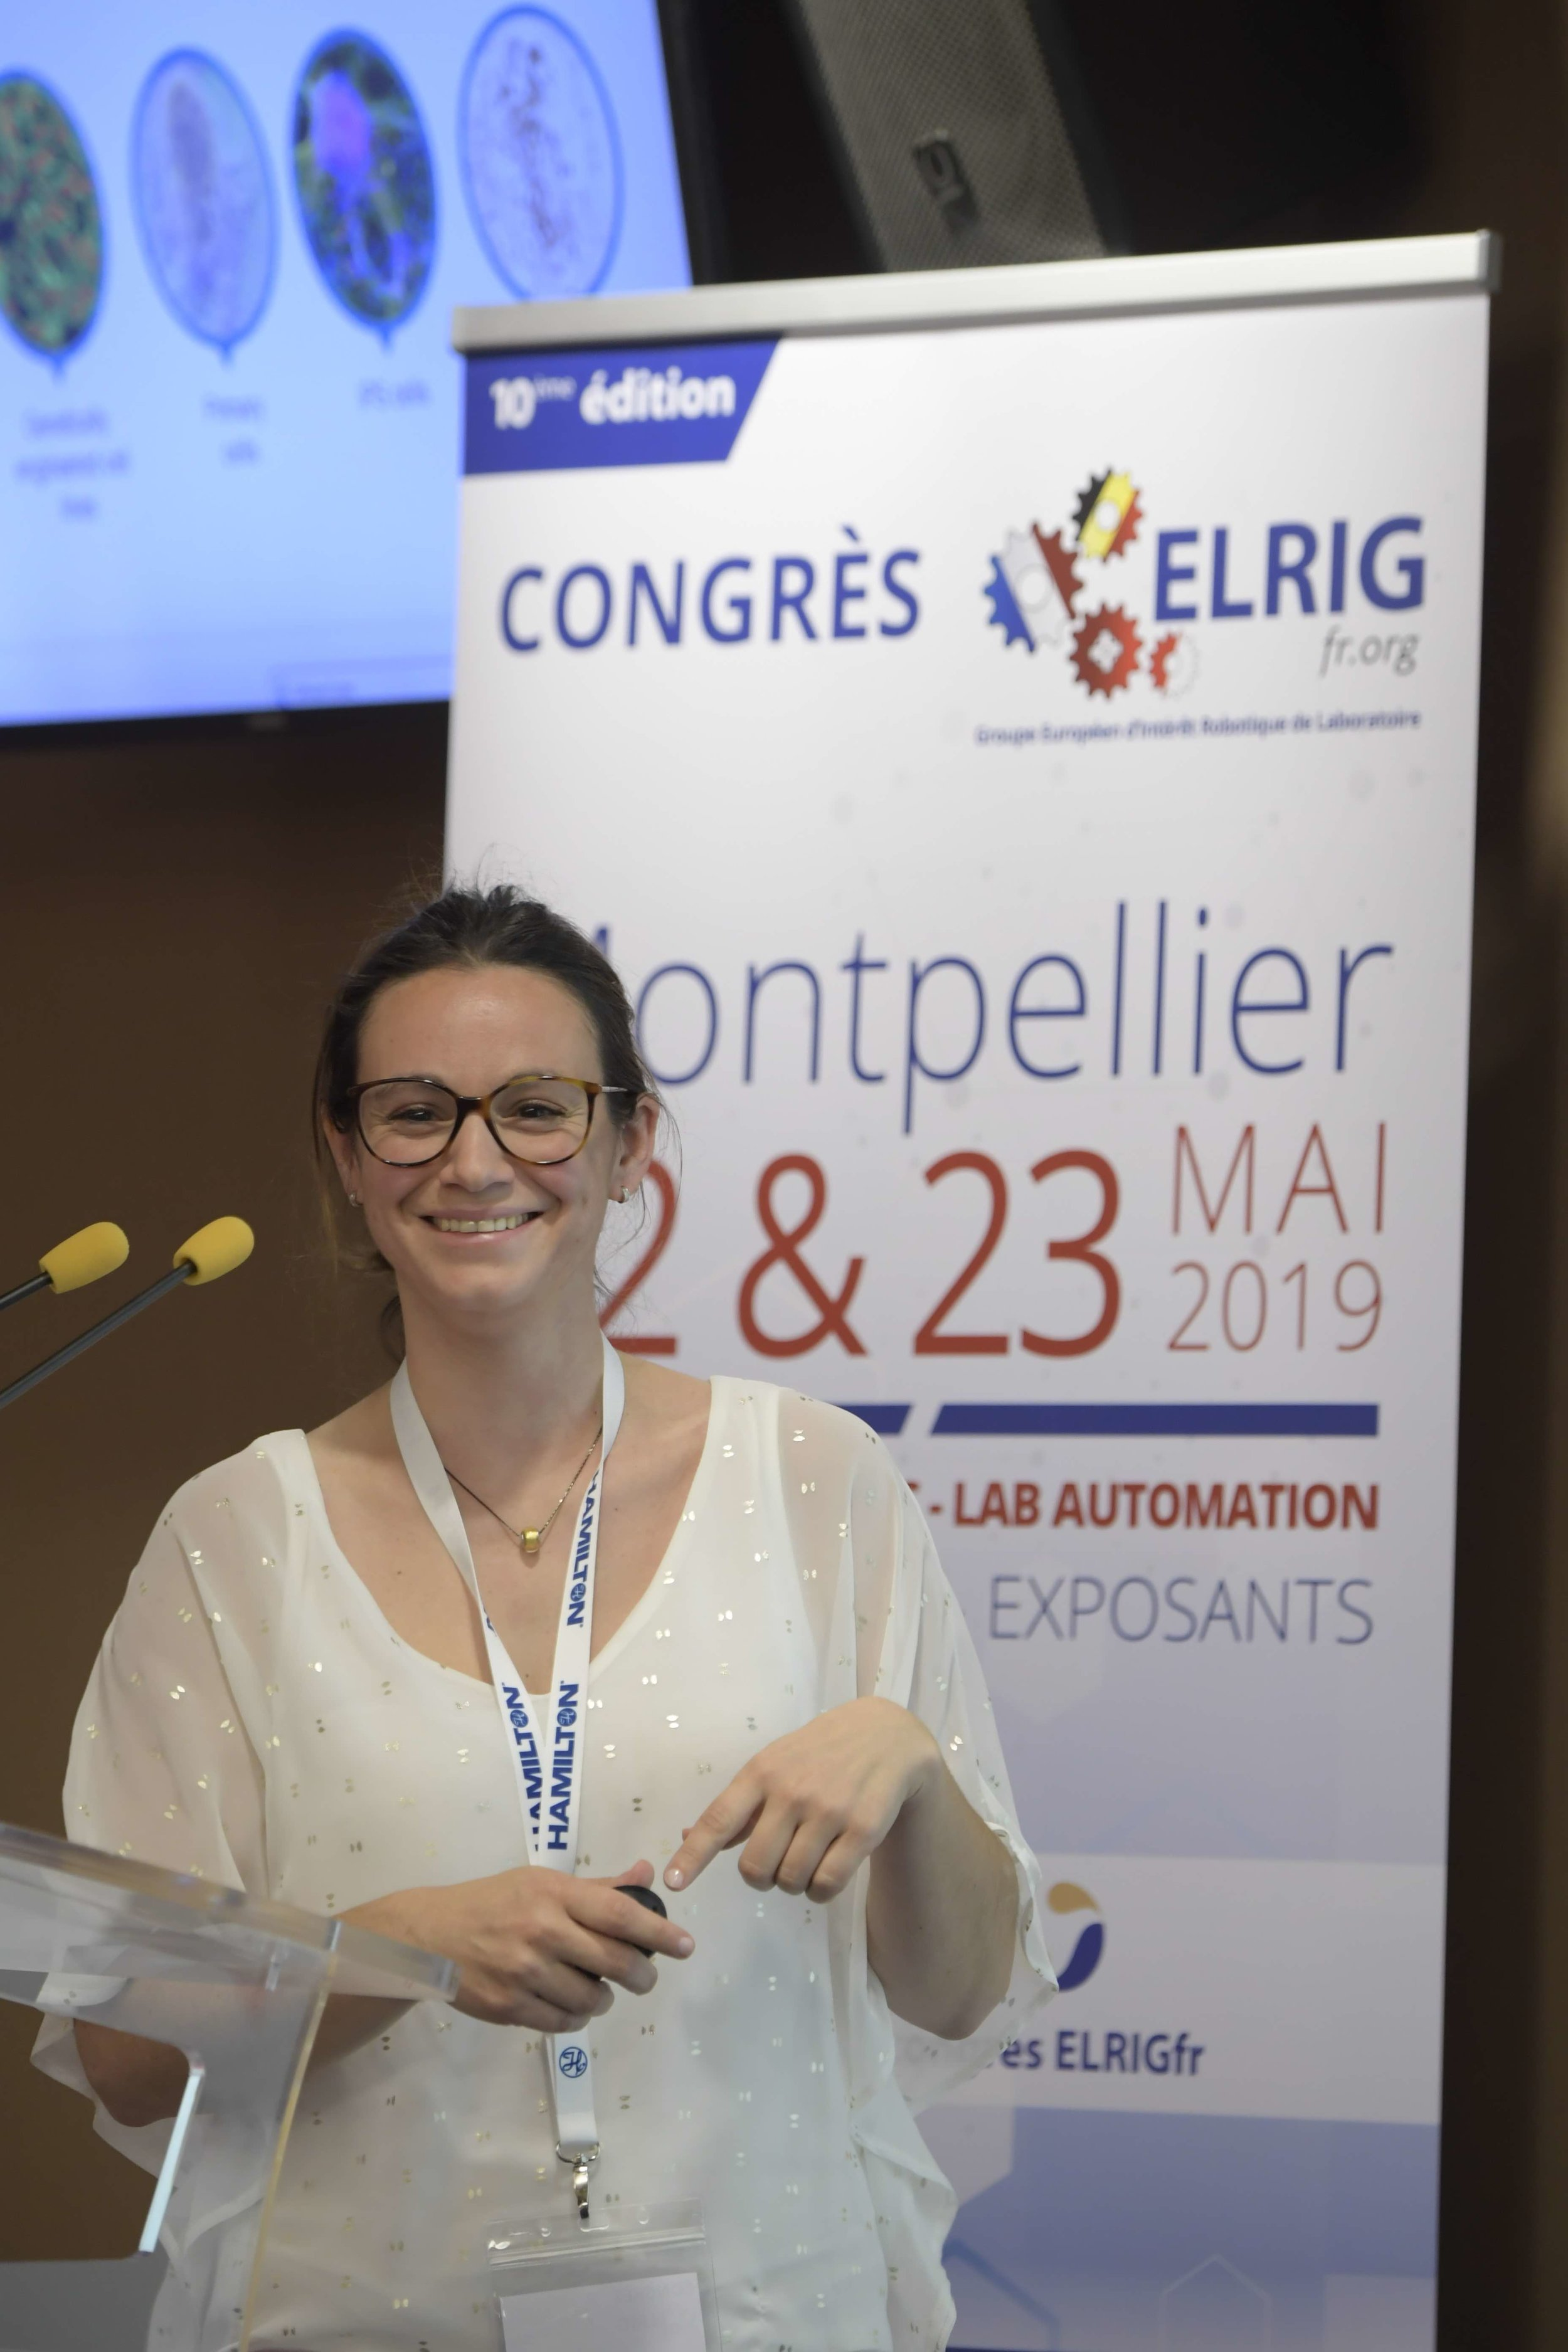 _DSC1500ELRIG MONTPELLIER CONFERENCE 2019©Luc Jennepin.jpeg